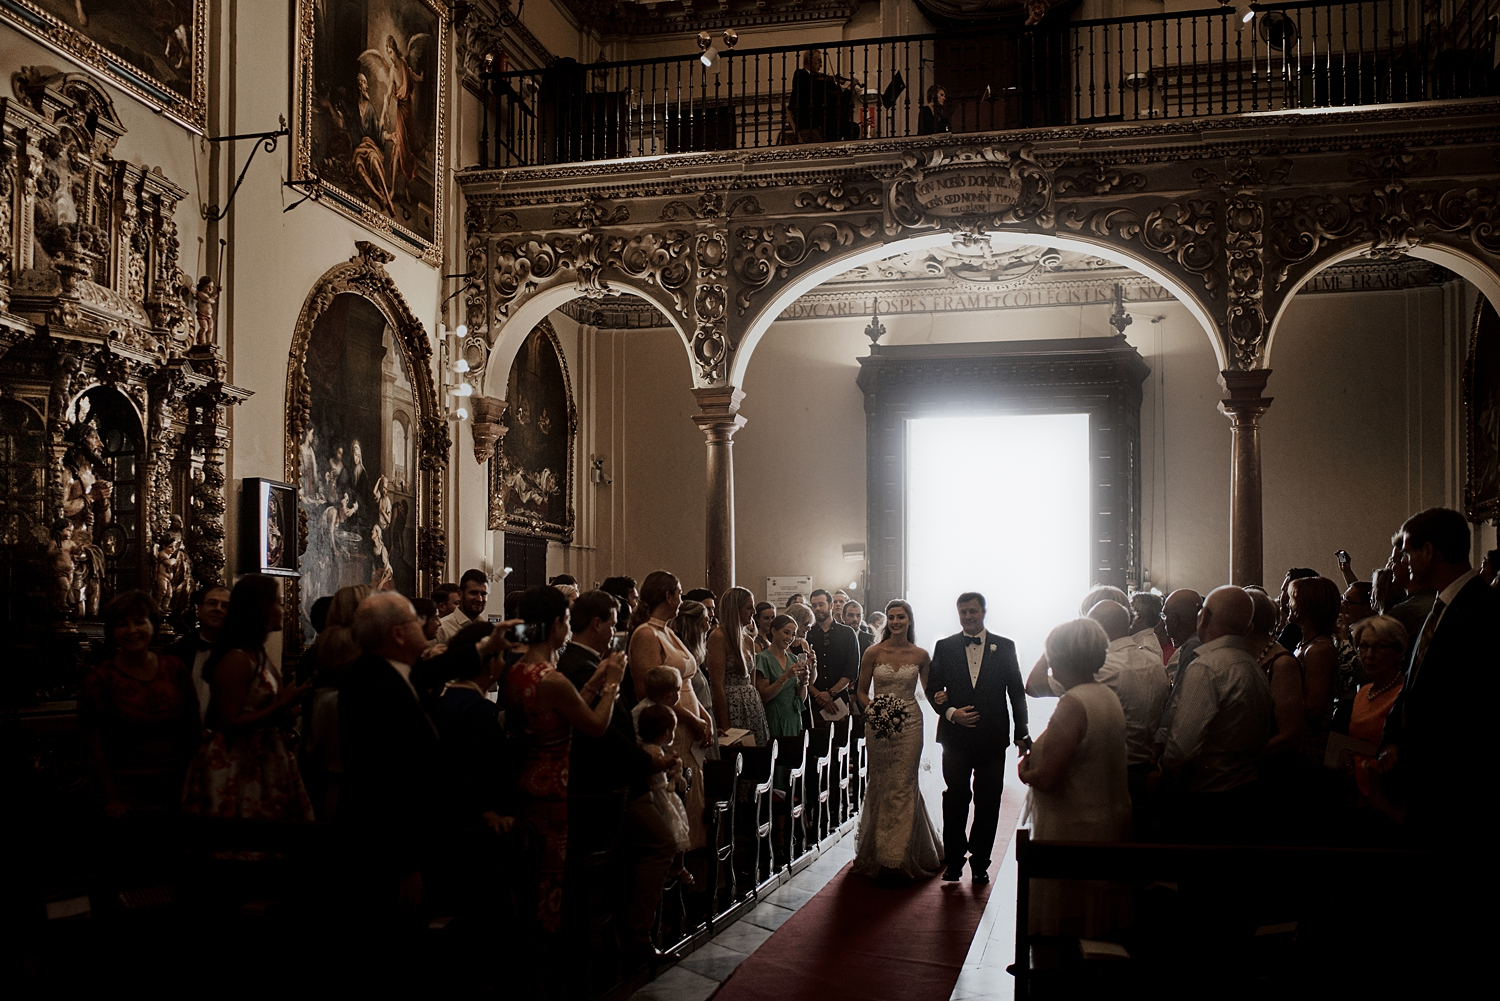 muse+and+mirror-wedding+photographer+sevilla-spain+wedding_0089.jpg